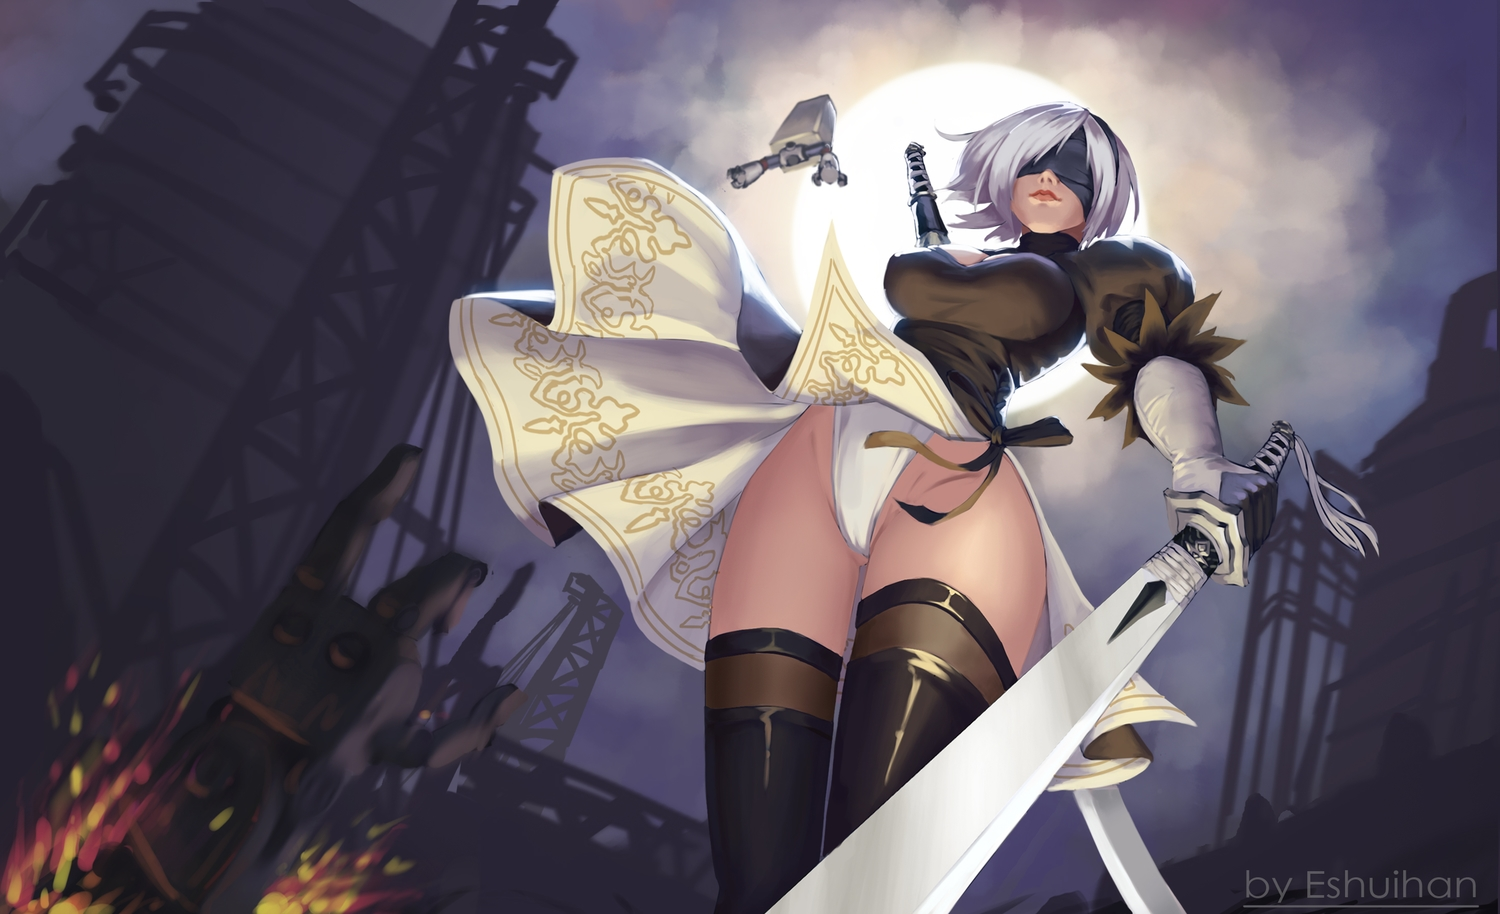 blindfold breasts cameltoe cleavage dress eshuihan gloves gray_hair headband katana leotard moon nier nier:_automata night pod_(nier:_automata) short_hair sword thighhighs weapon yorha_unit_no._2_type_b